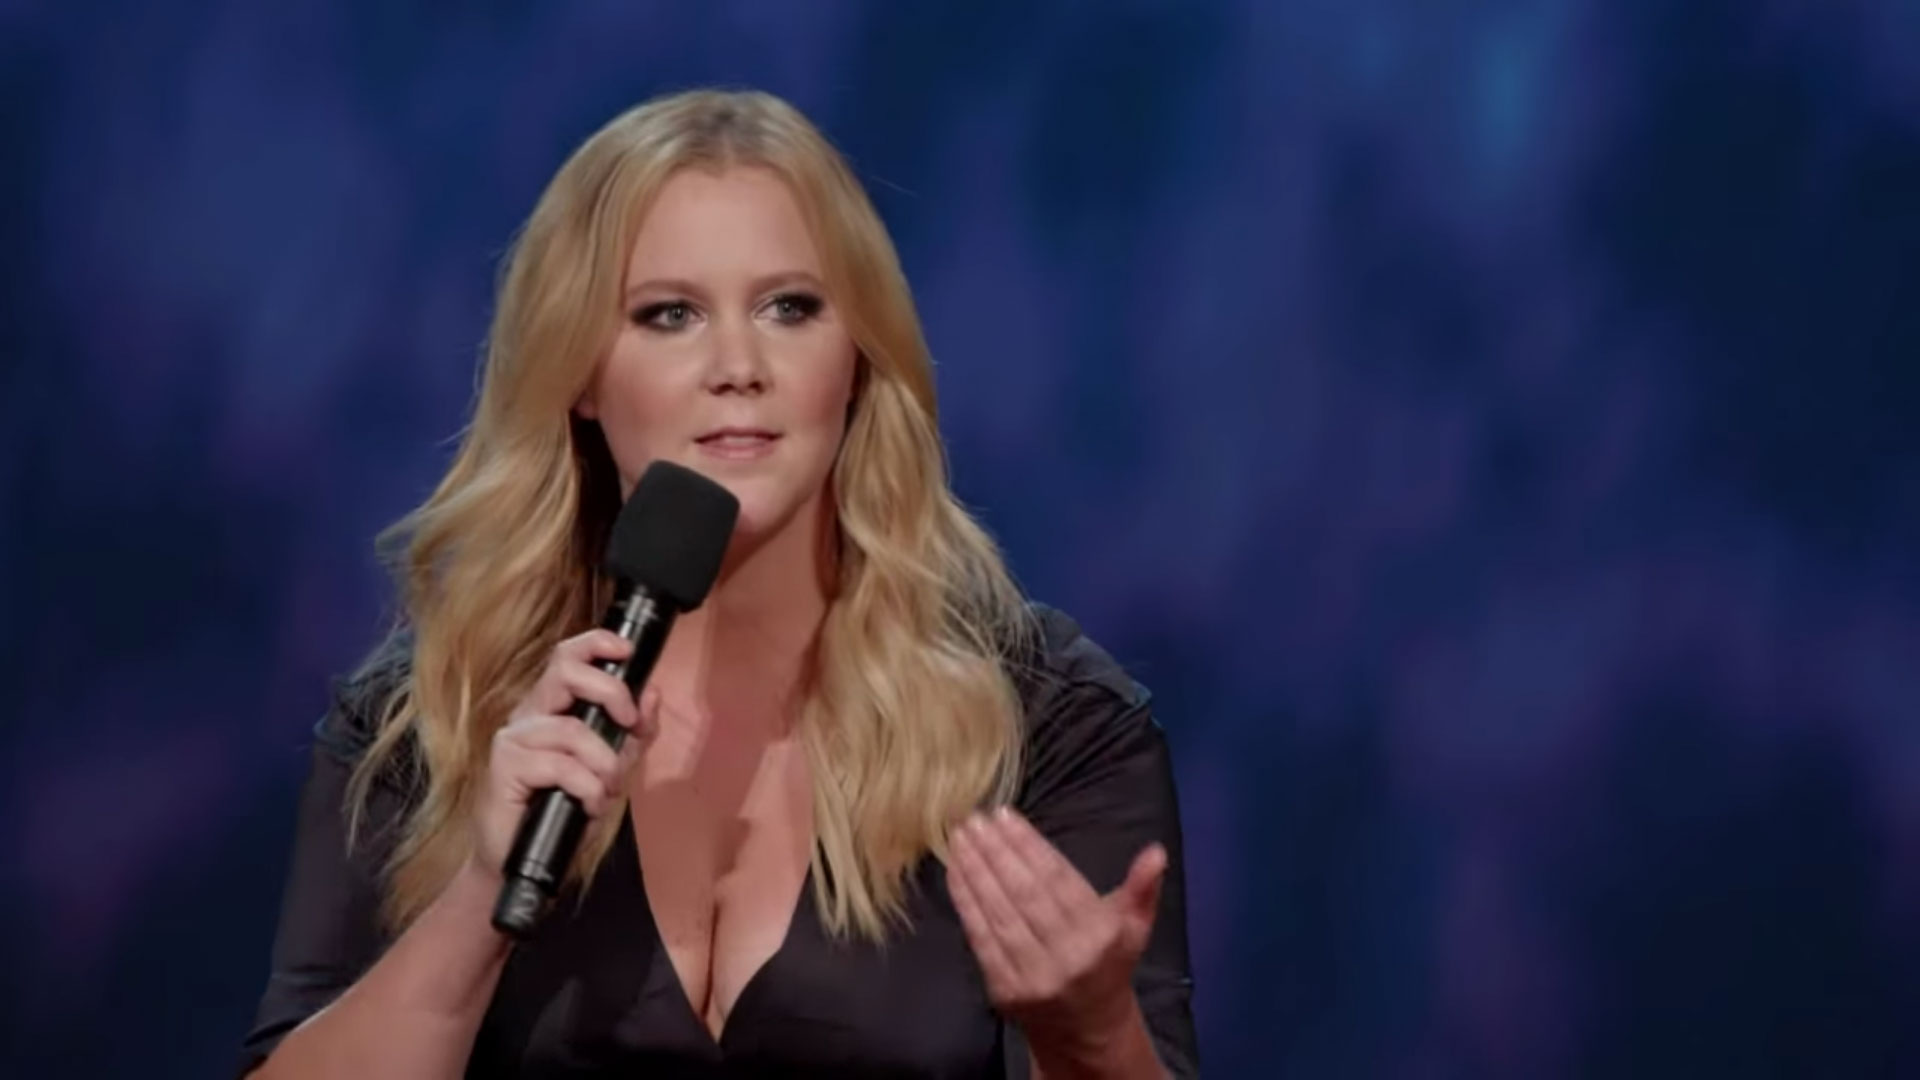 Amy Schumer goes to town on gender bias and sex during HBO special